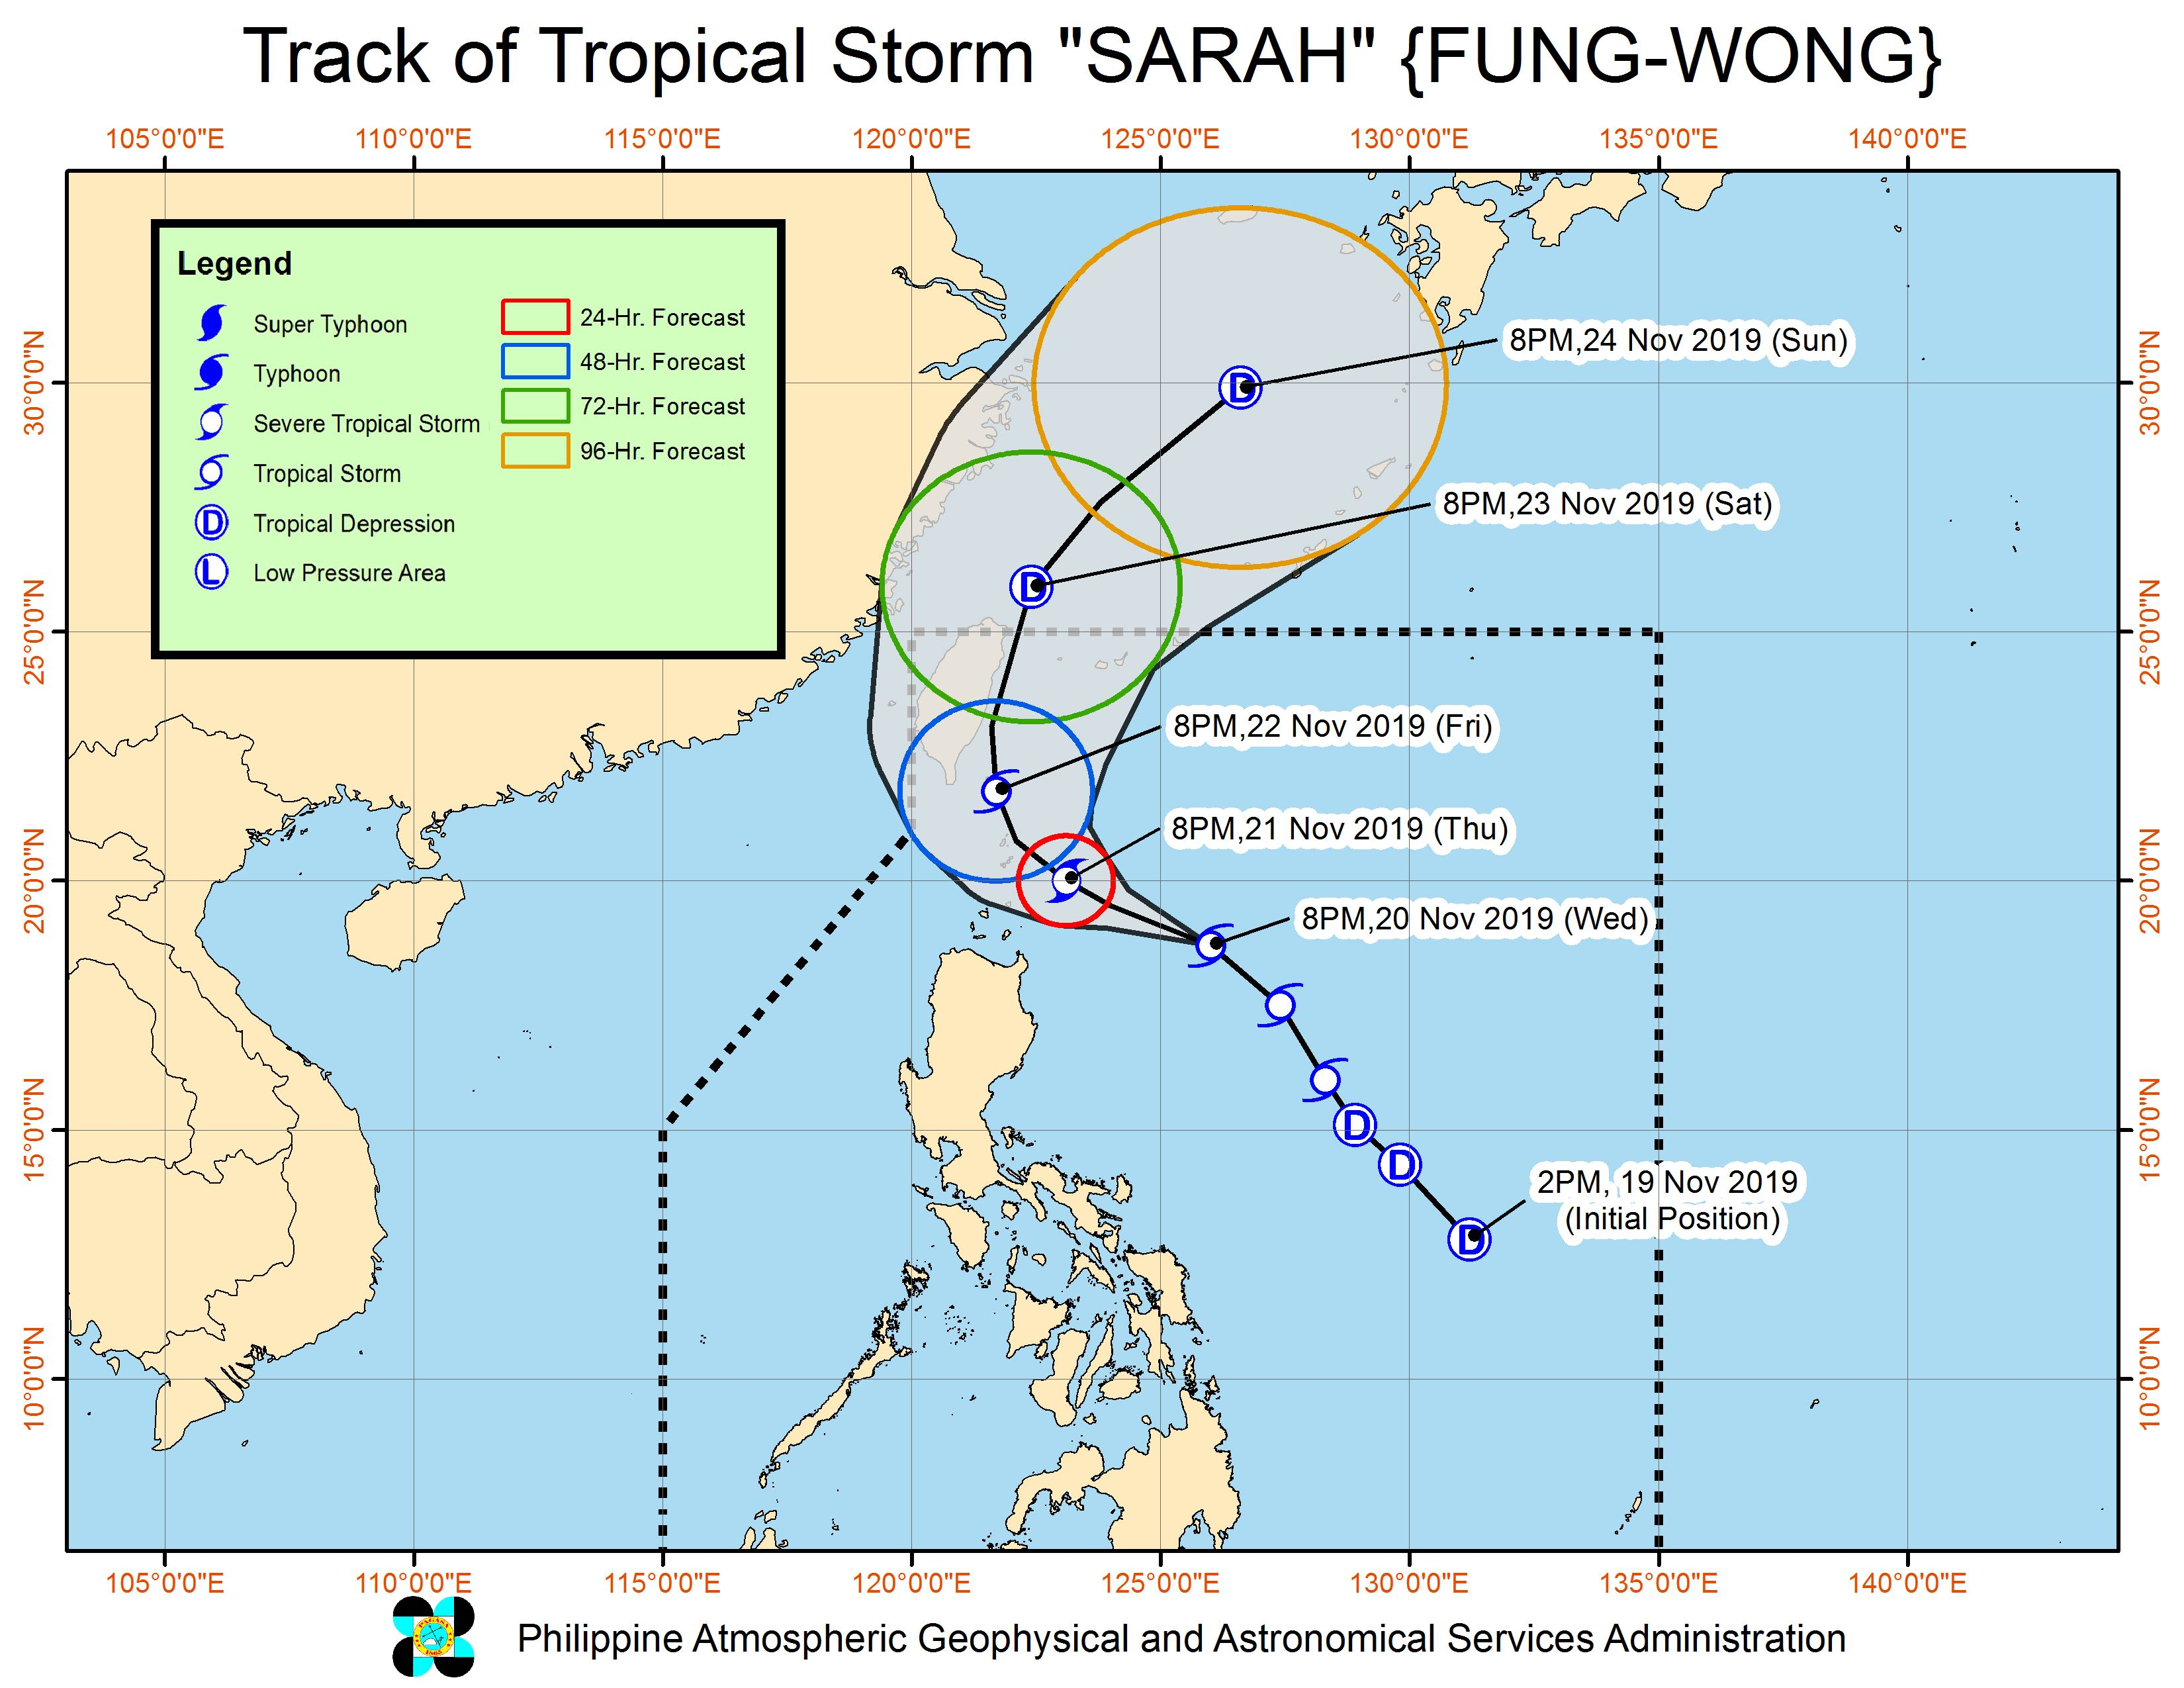 Forecast track of Tropical Storm Sarah (Fung-wong) as of November 20, 2019, 11 pm. Image from PAGASA